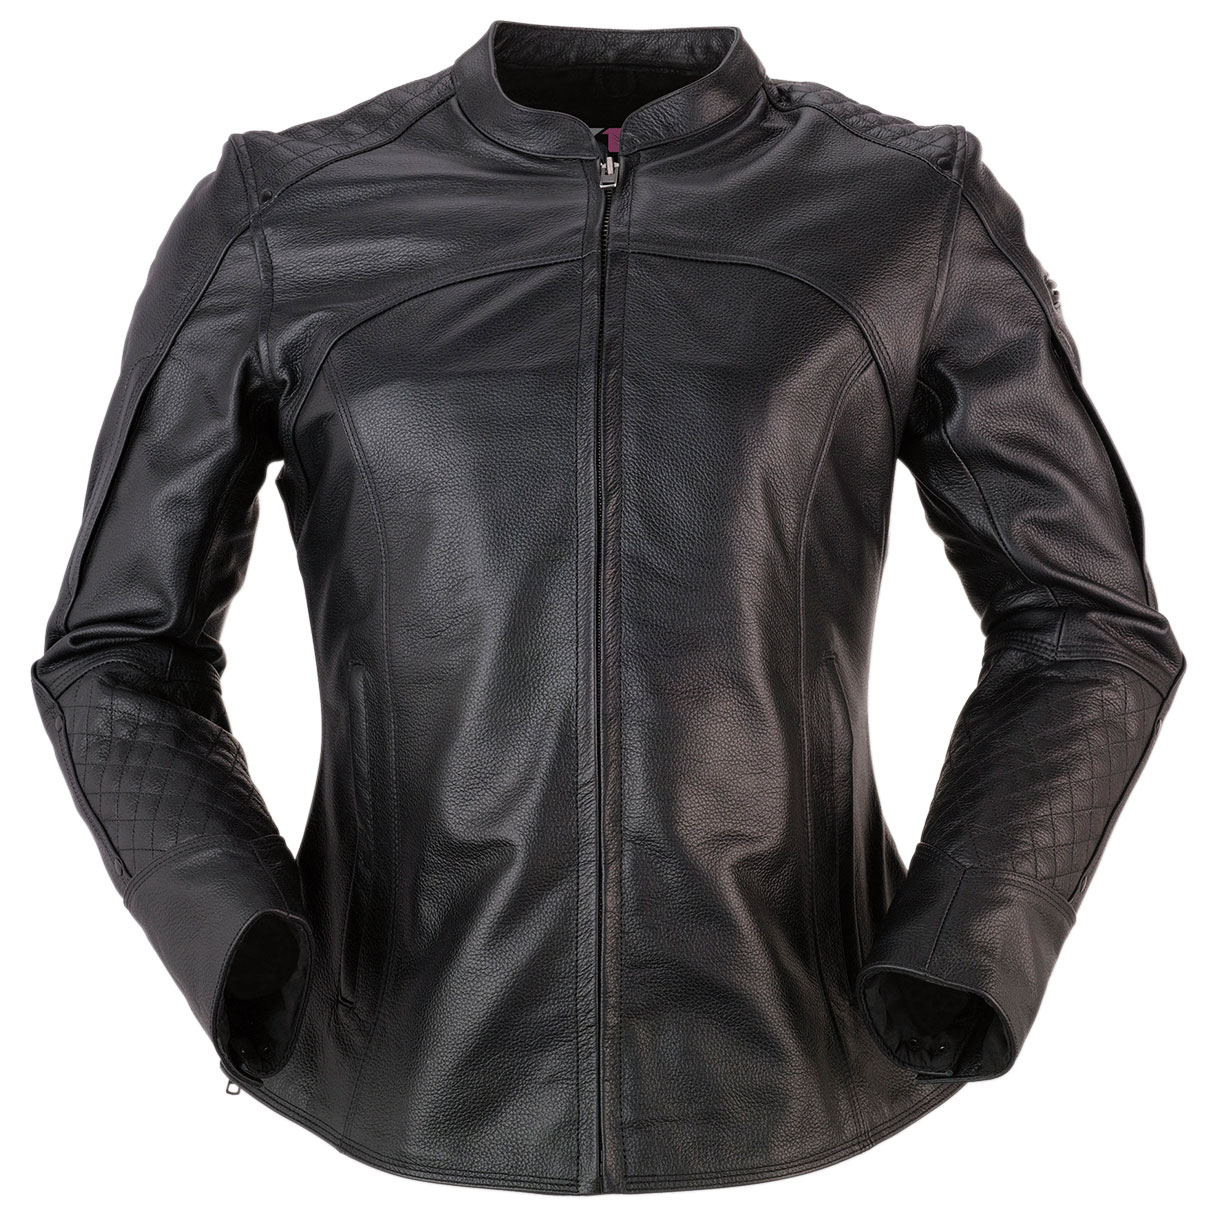 Z1R Women's 35 Special Black Leather Jacket